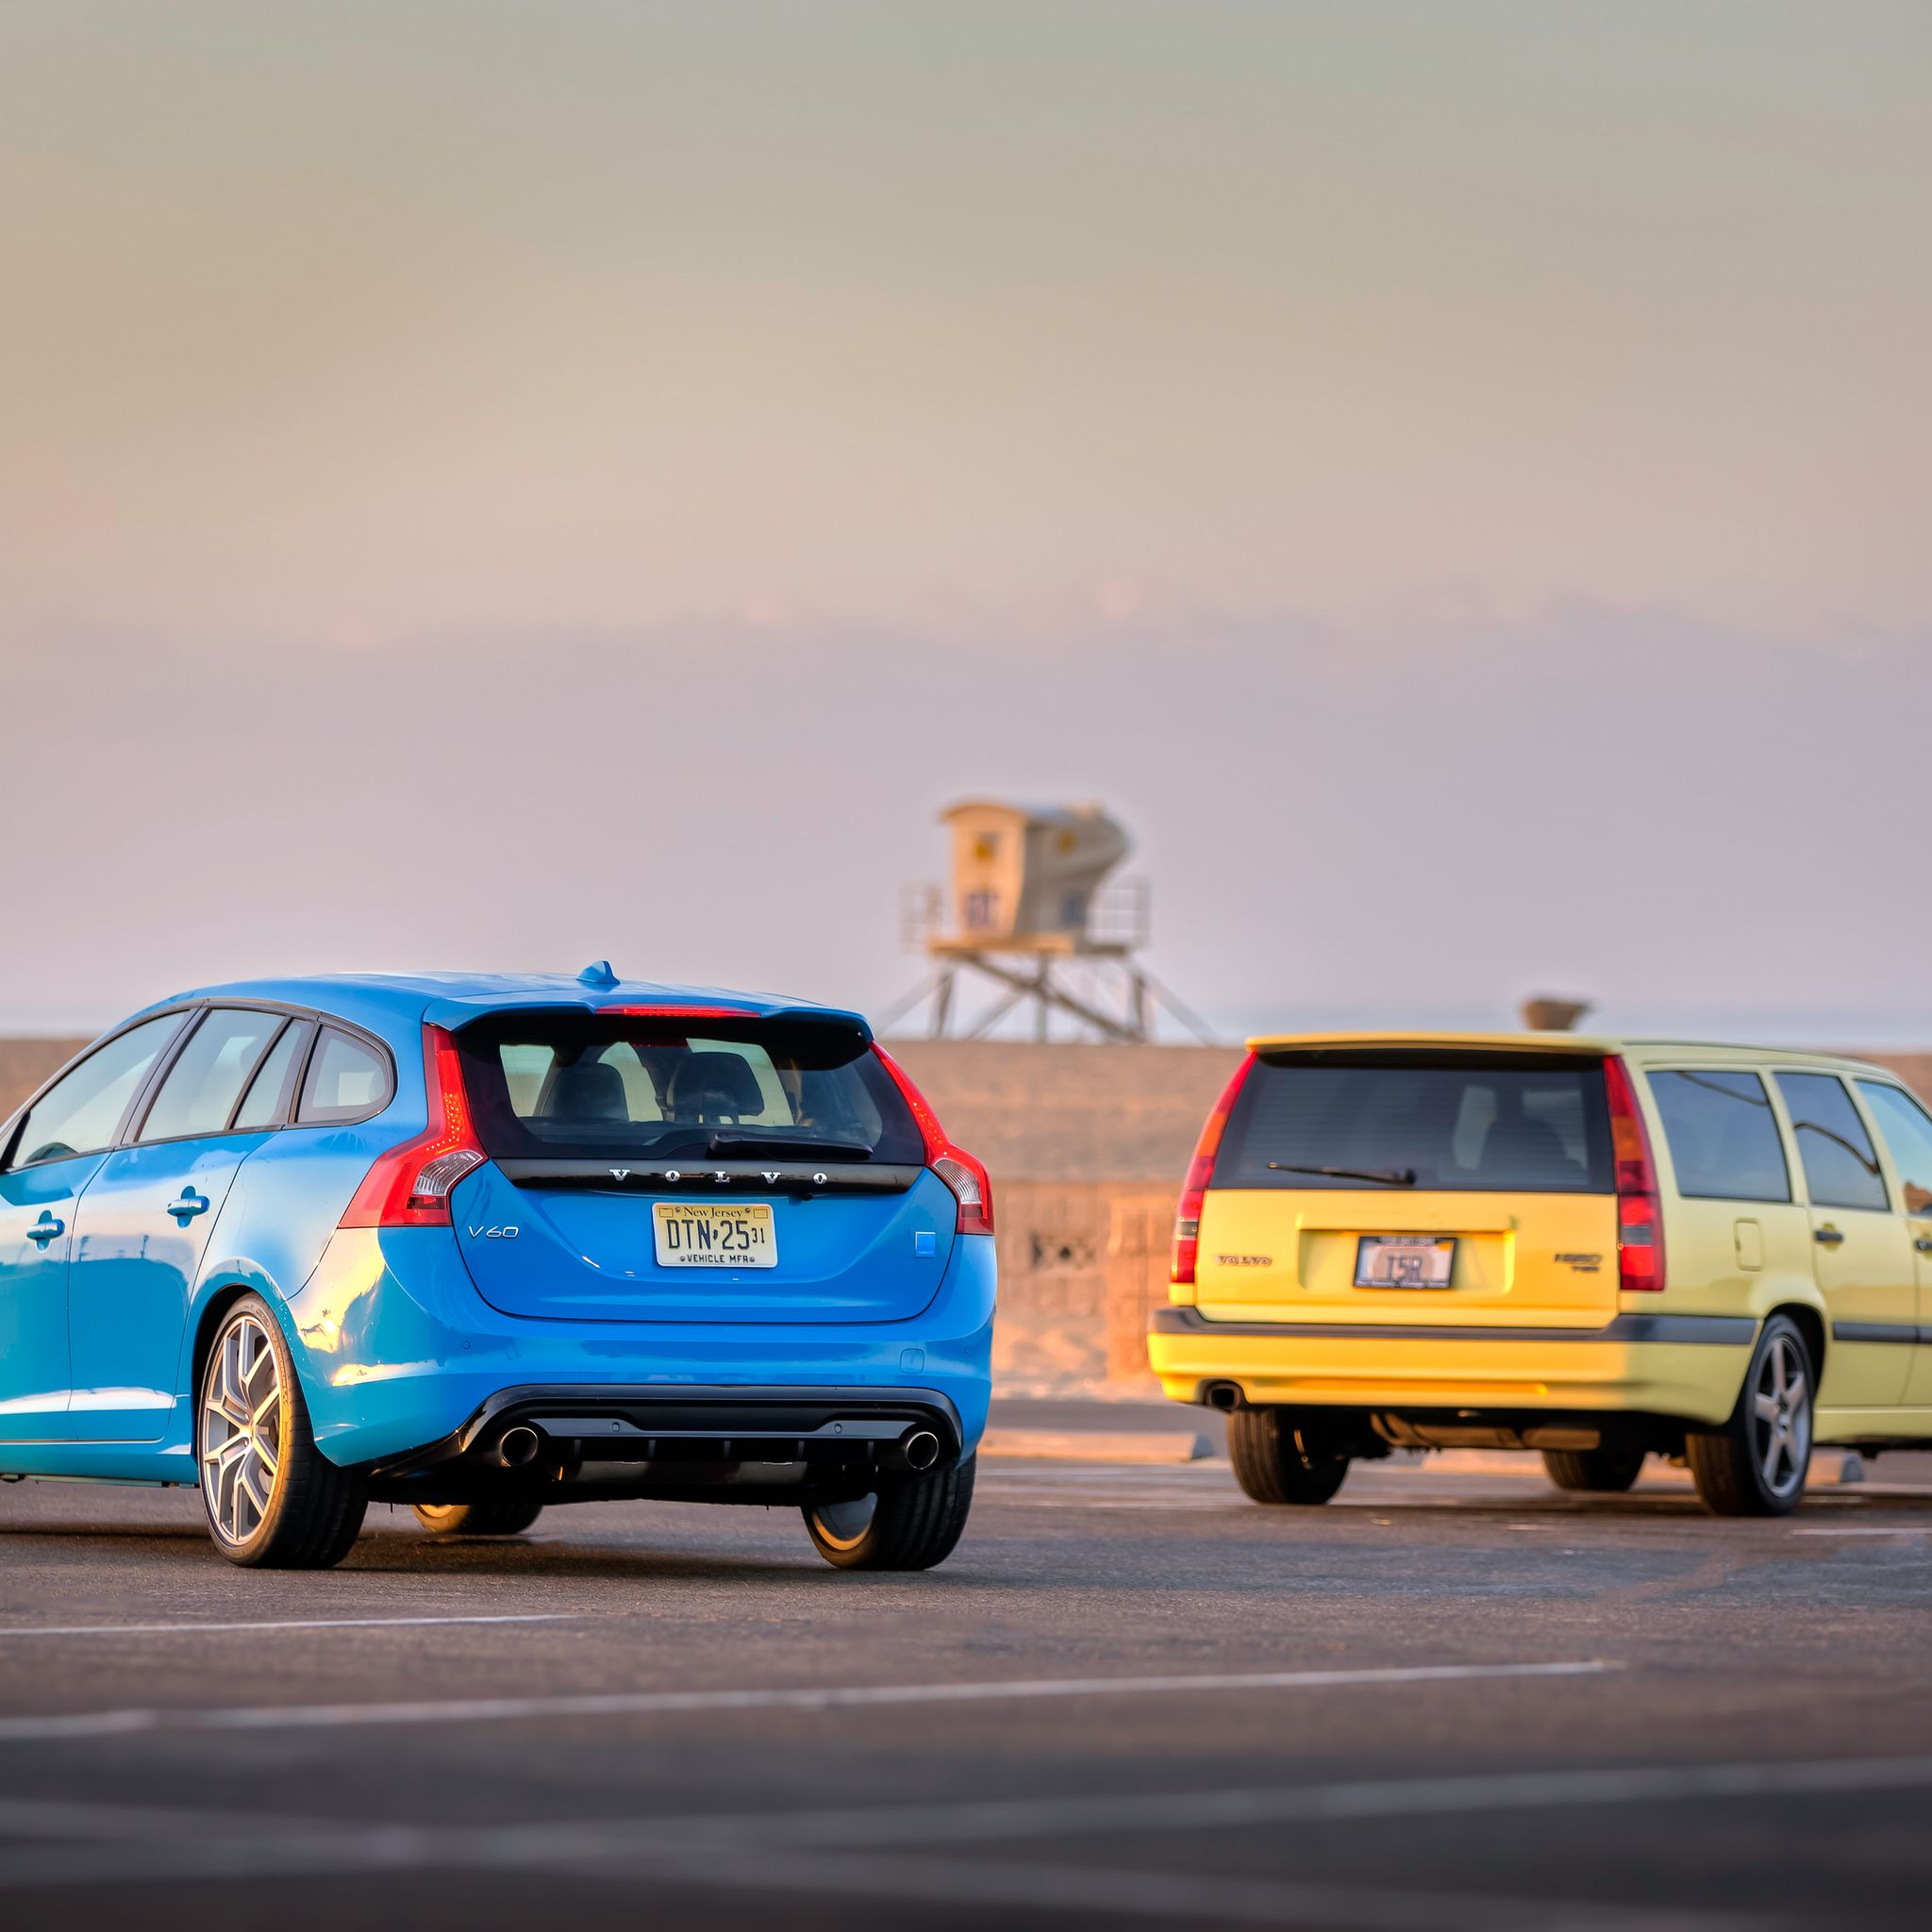 These Incredible 850 T5-R/V60 Polestar Pics Are The